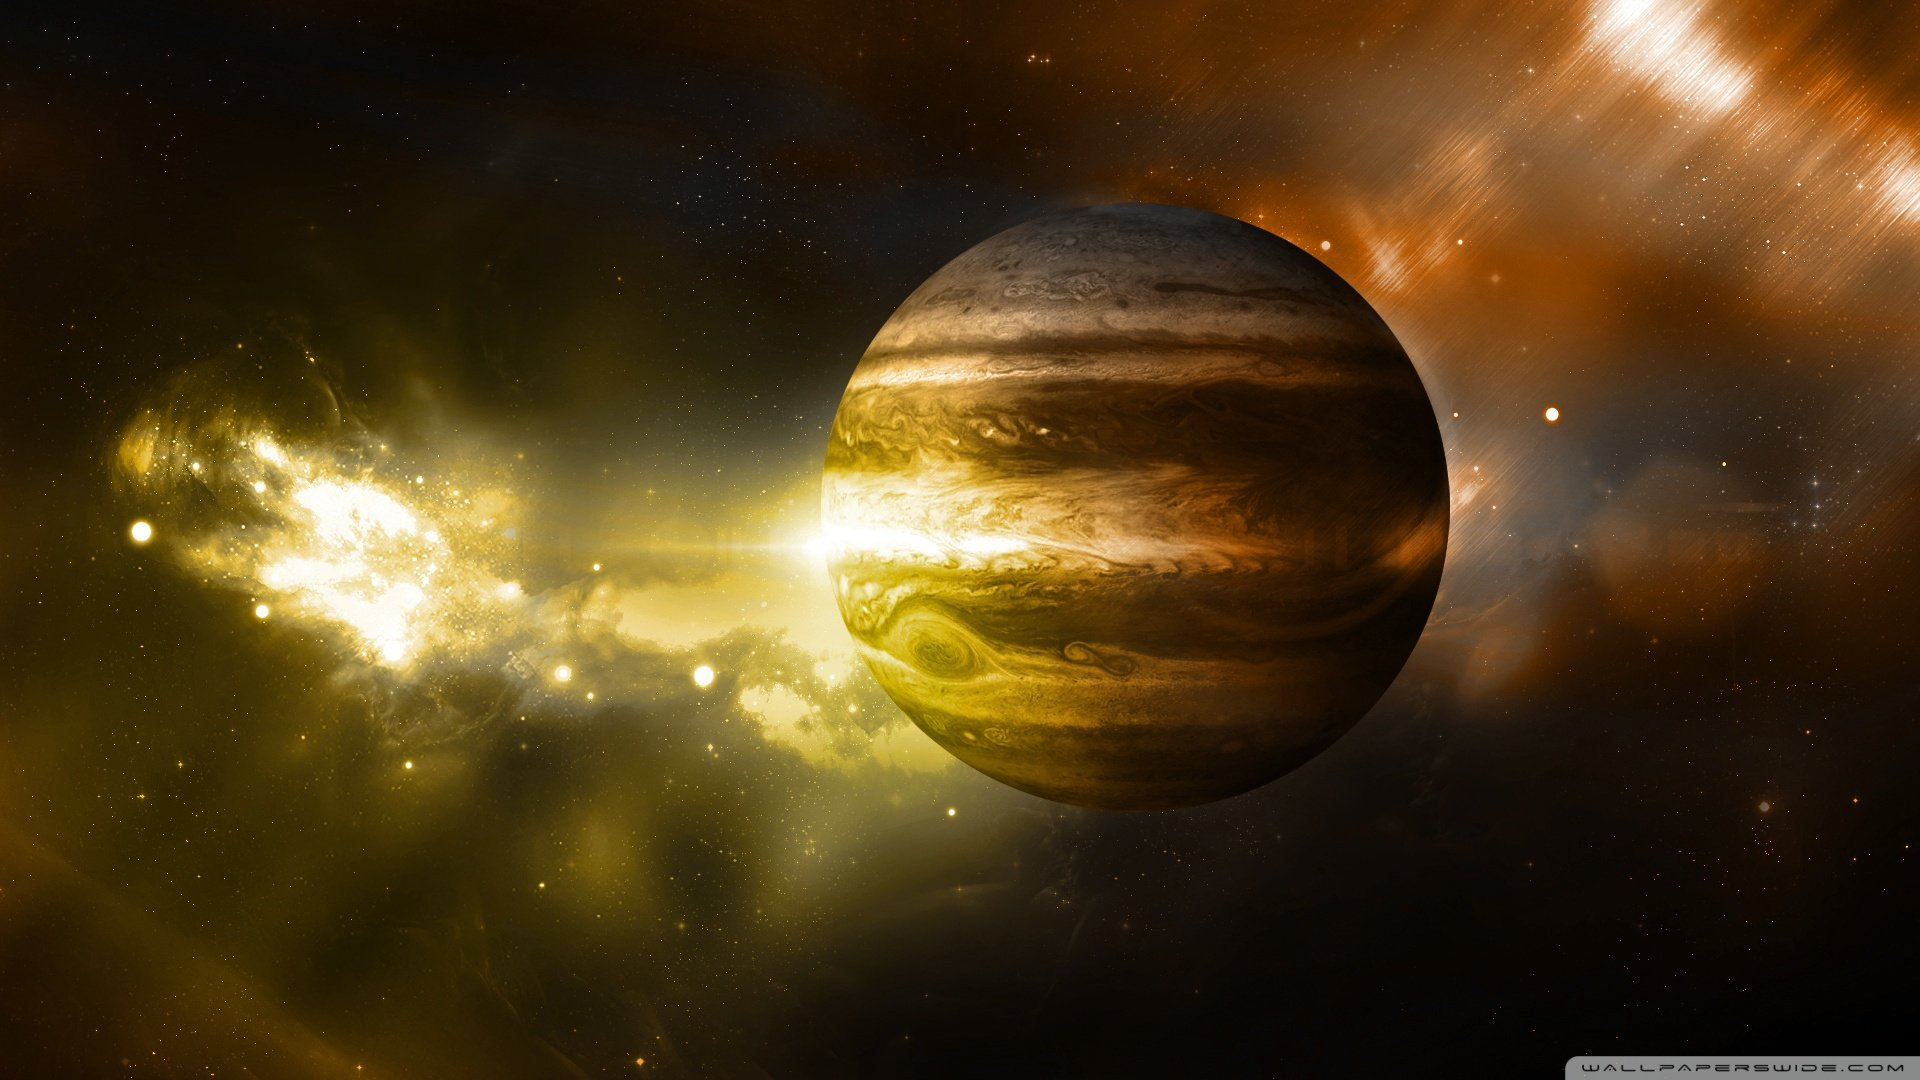 Jupiter Wallpaper 16   1920 X 1080 stmednet 1920x1080